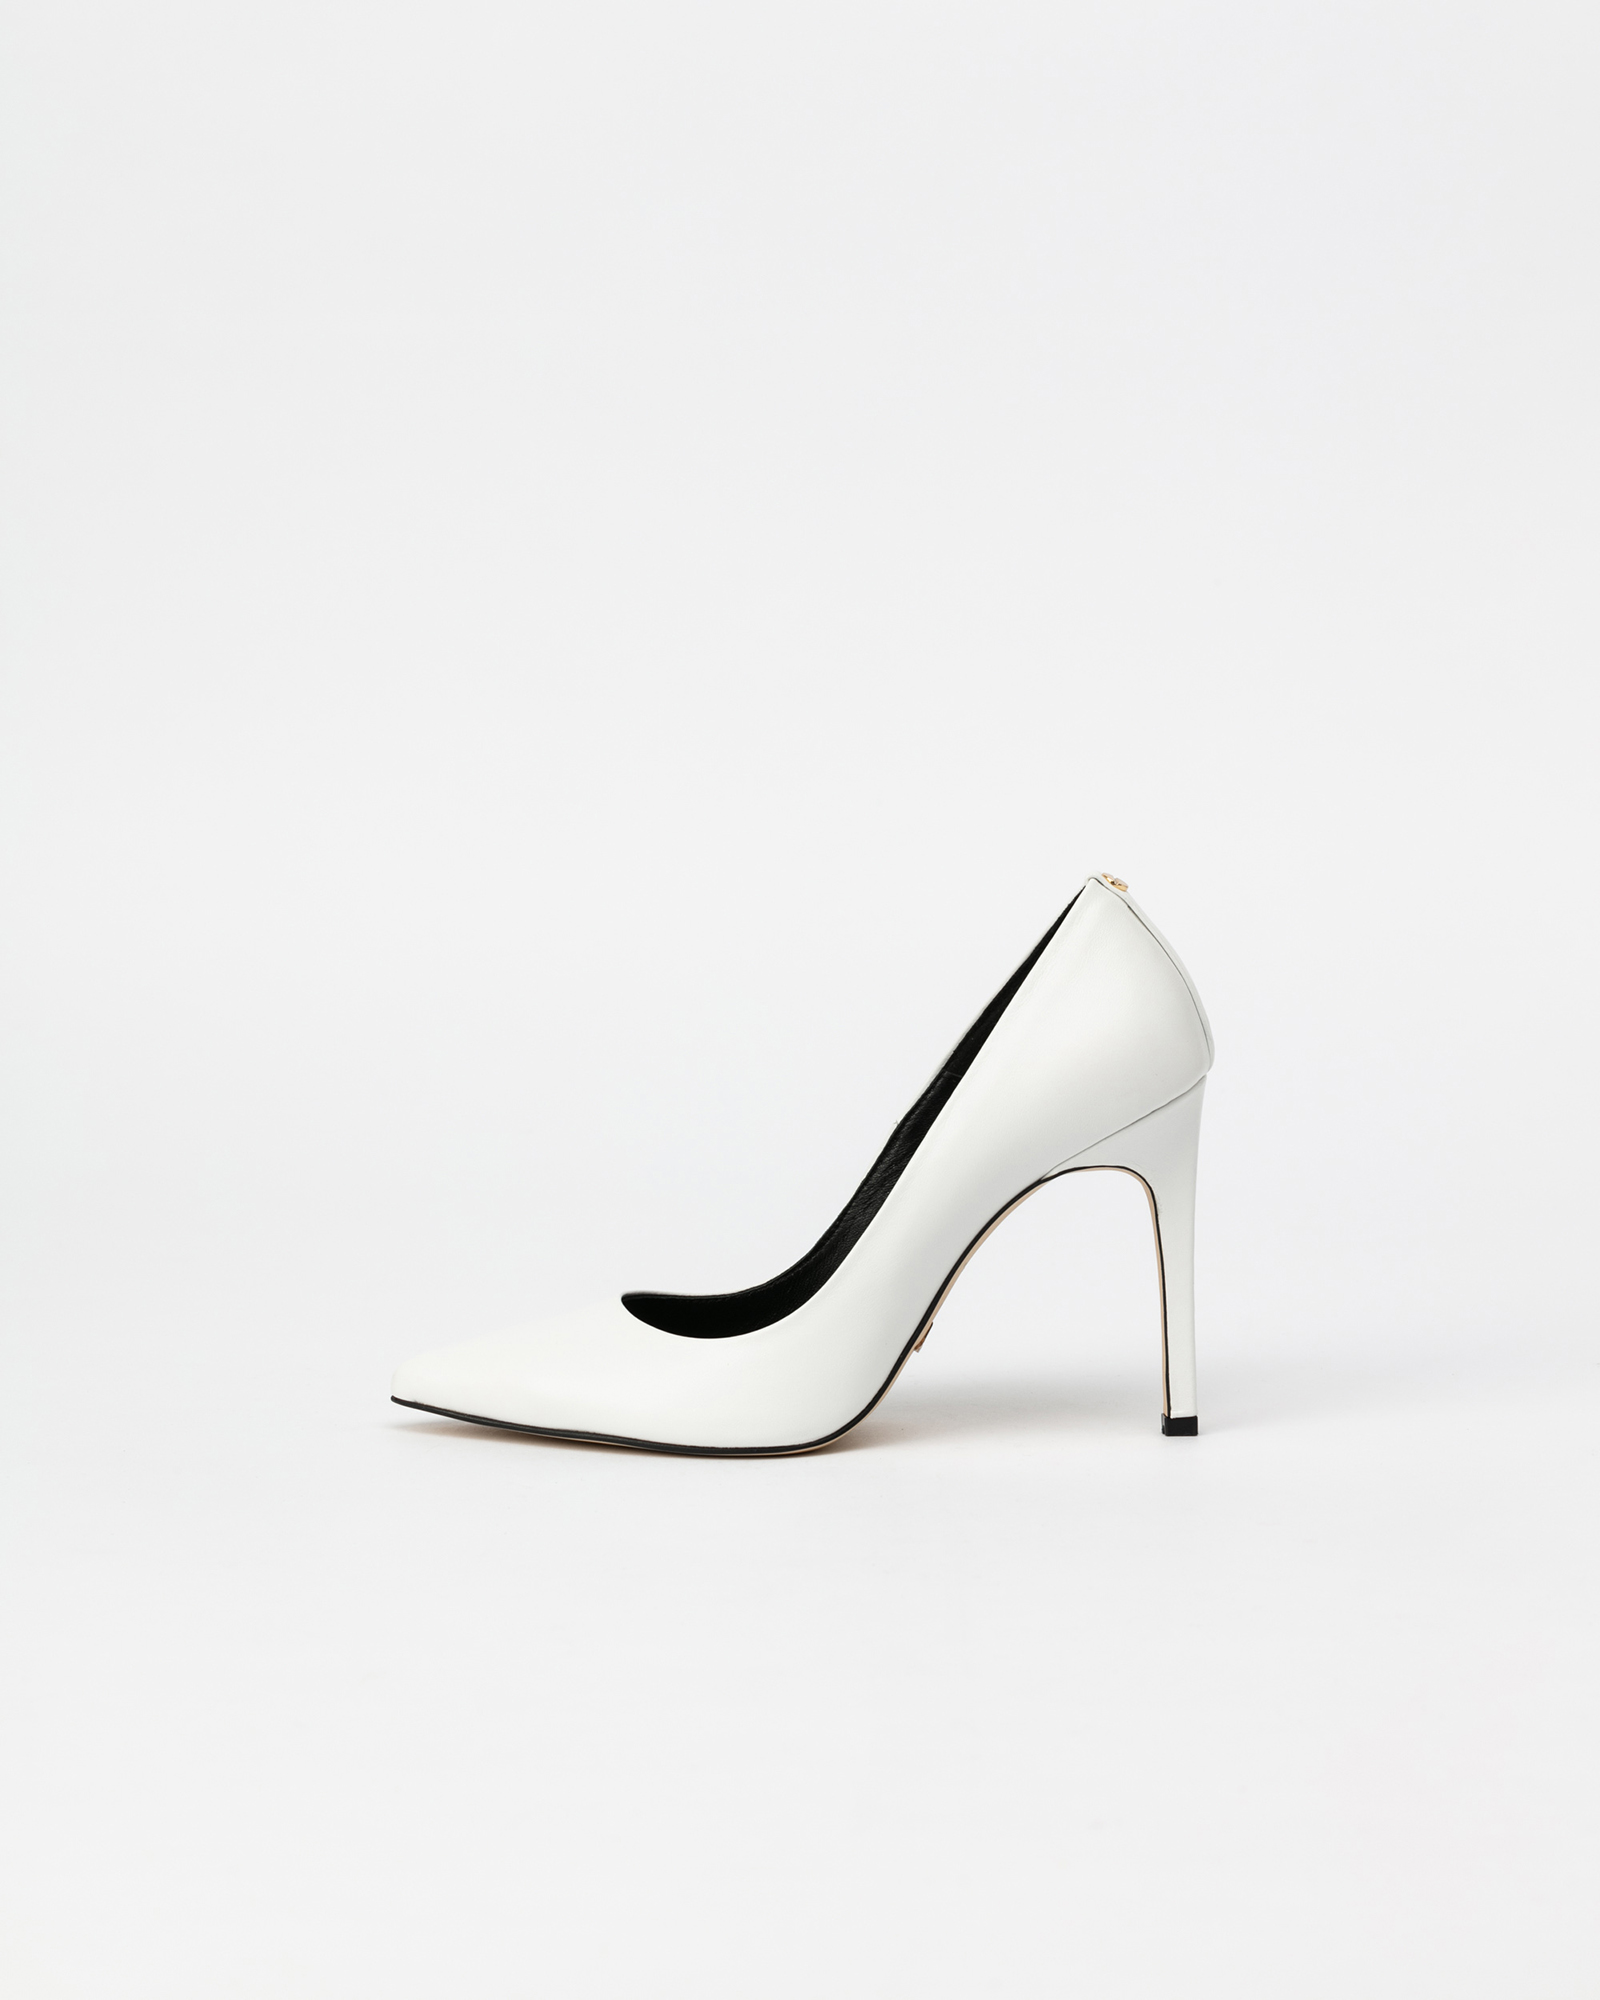 Boulon Stiletto Pumps in Pure White